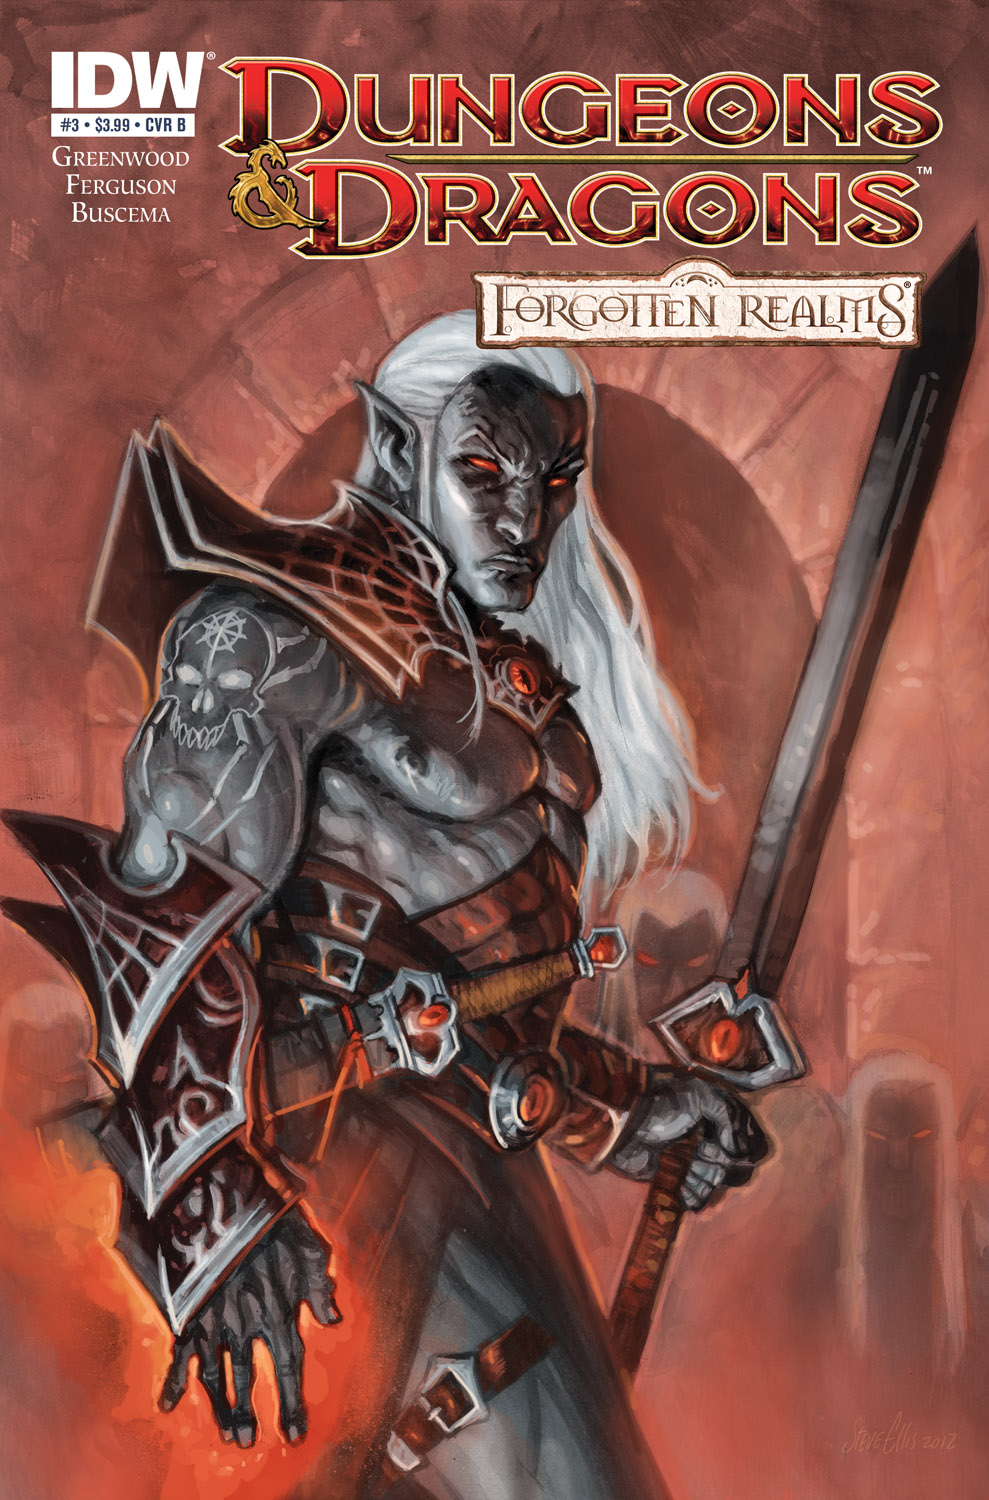 Dragon Realms Characters Dragons Forgotten Realms